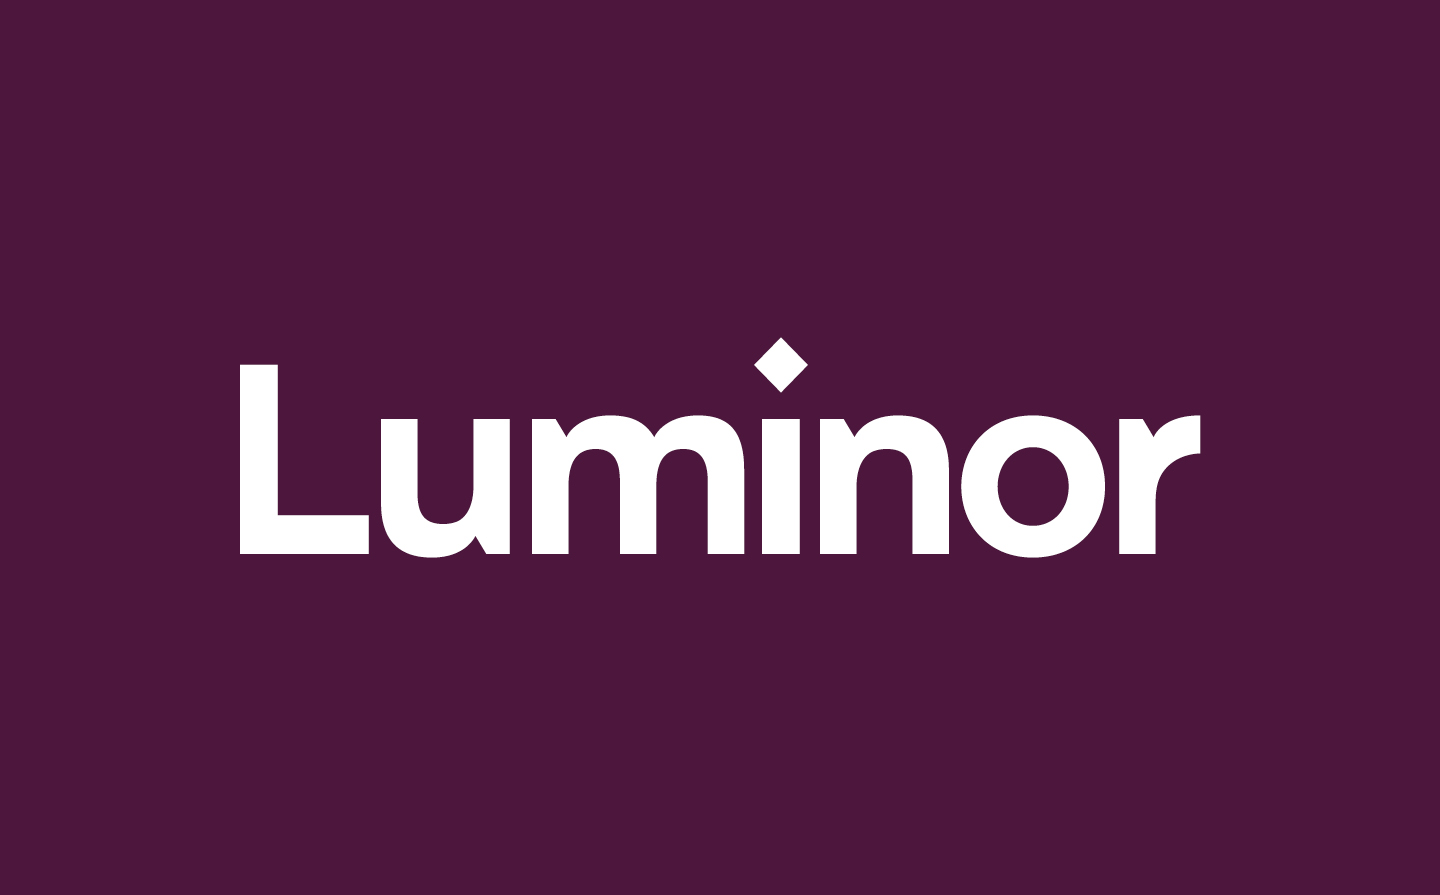 New brand name announced | Luminor